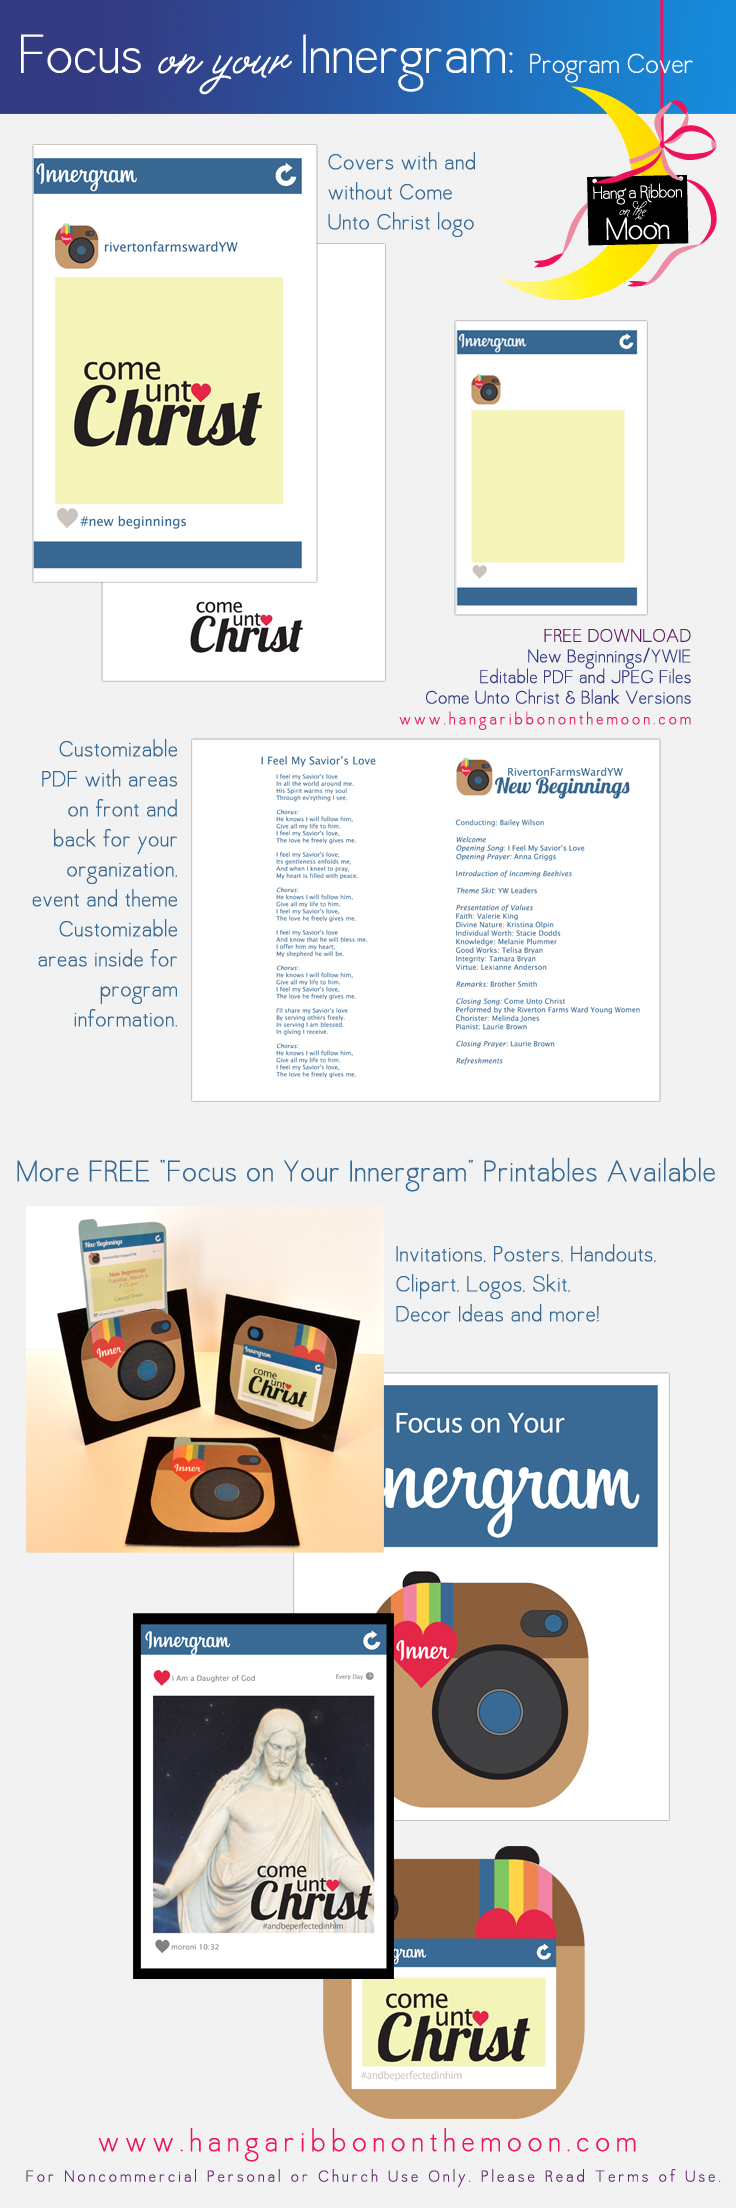 Focus on Your Innergram: Program Covers and Skit. Great theme for YWIE, New Beginnings, Relief Society, Youth Conference, Activity Days. Tons of free printables!